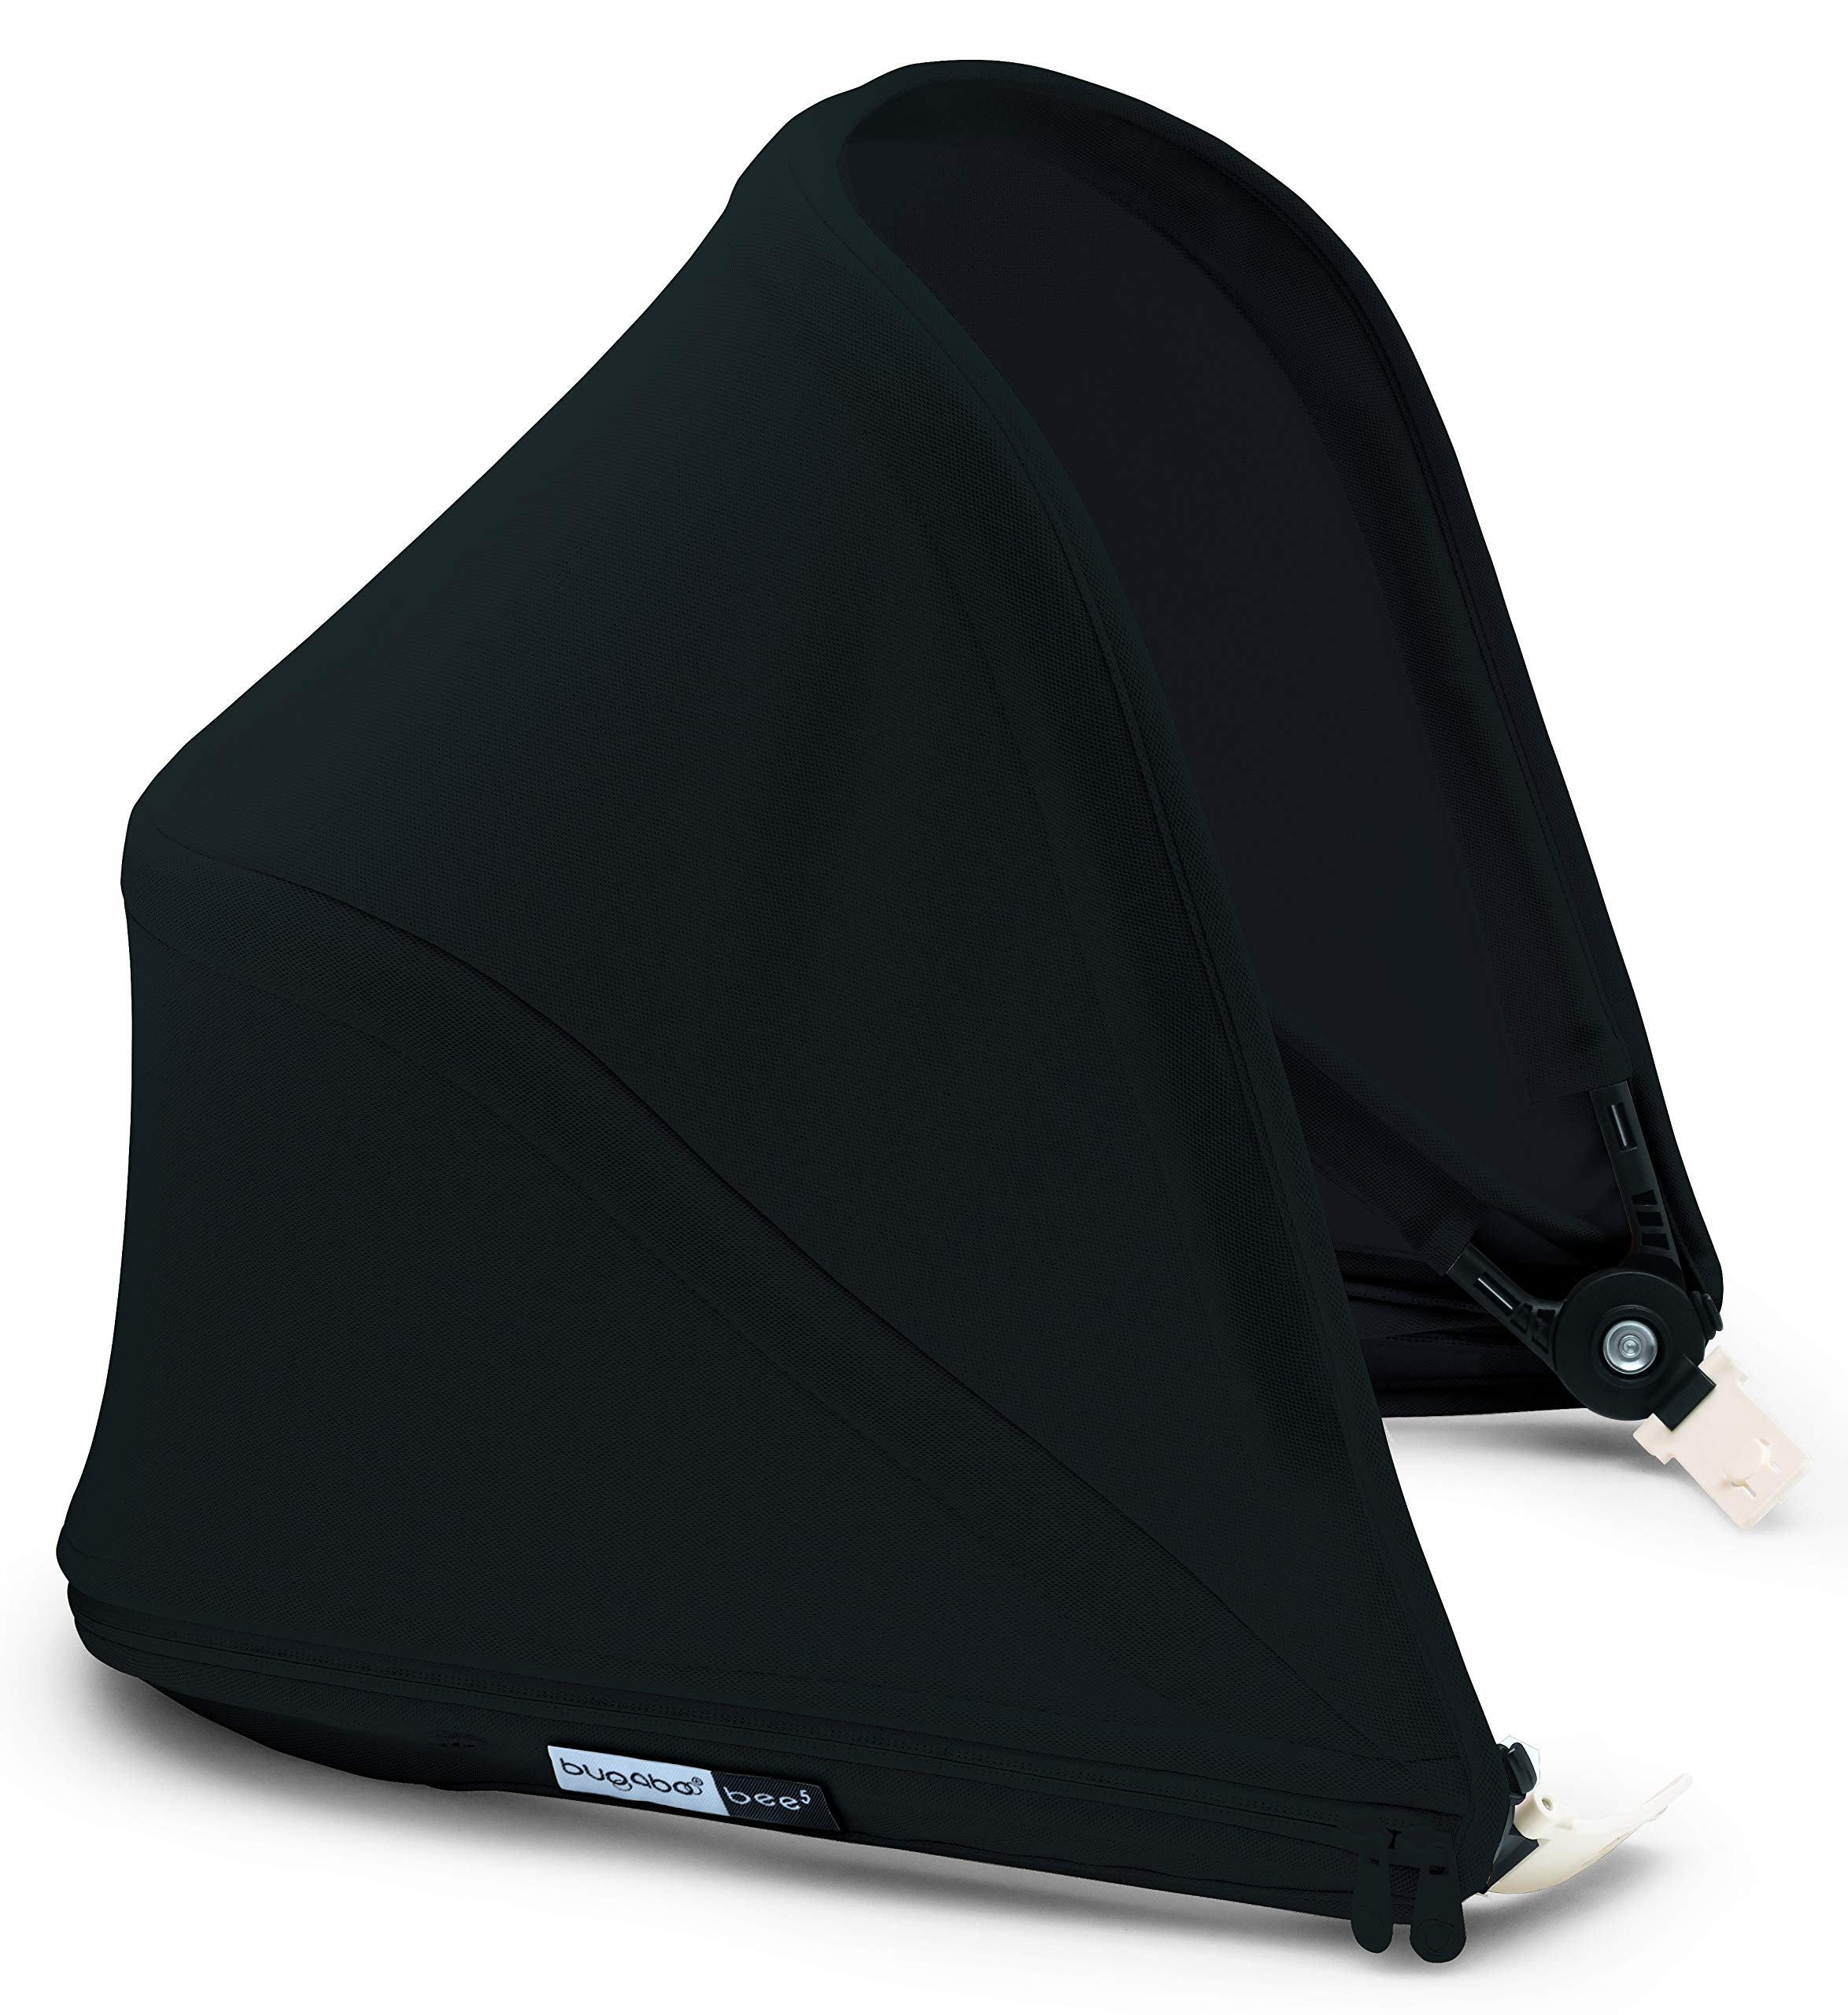 Bugaboo Bee5 Sun Canopy, Black - Extendable Sun Shade for Full Weather Protection, Machine Washable